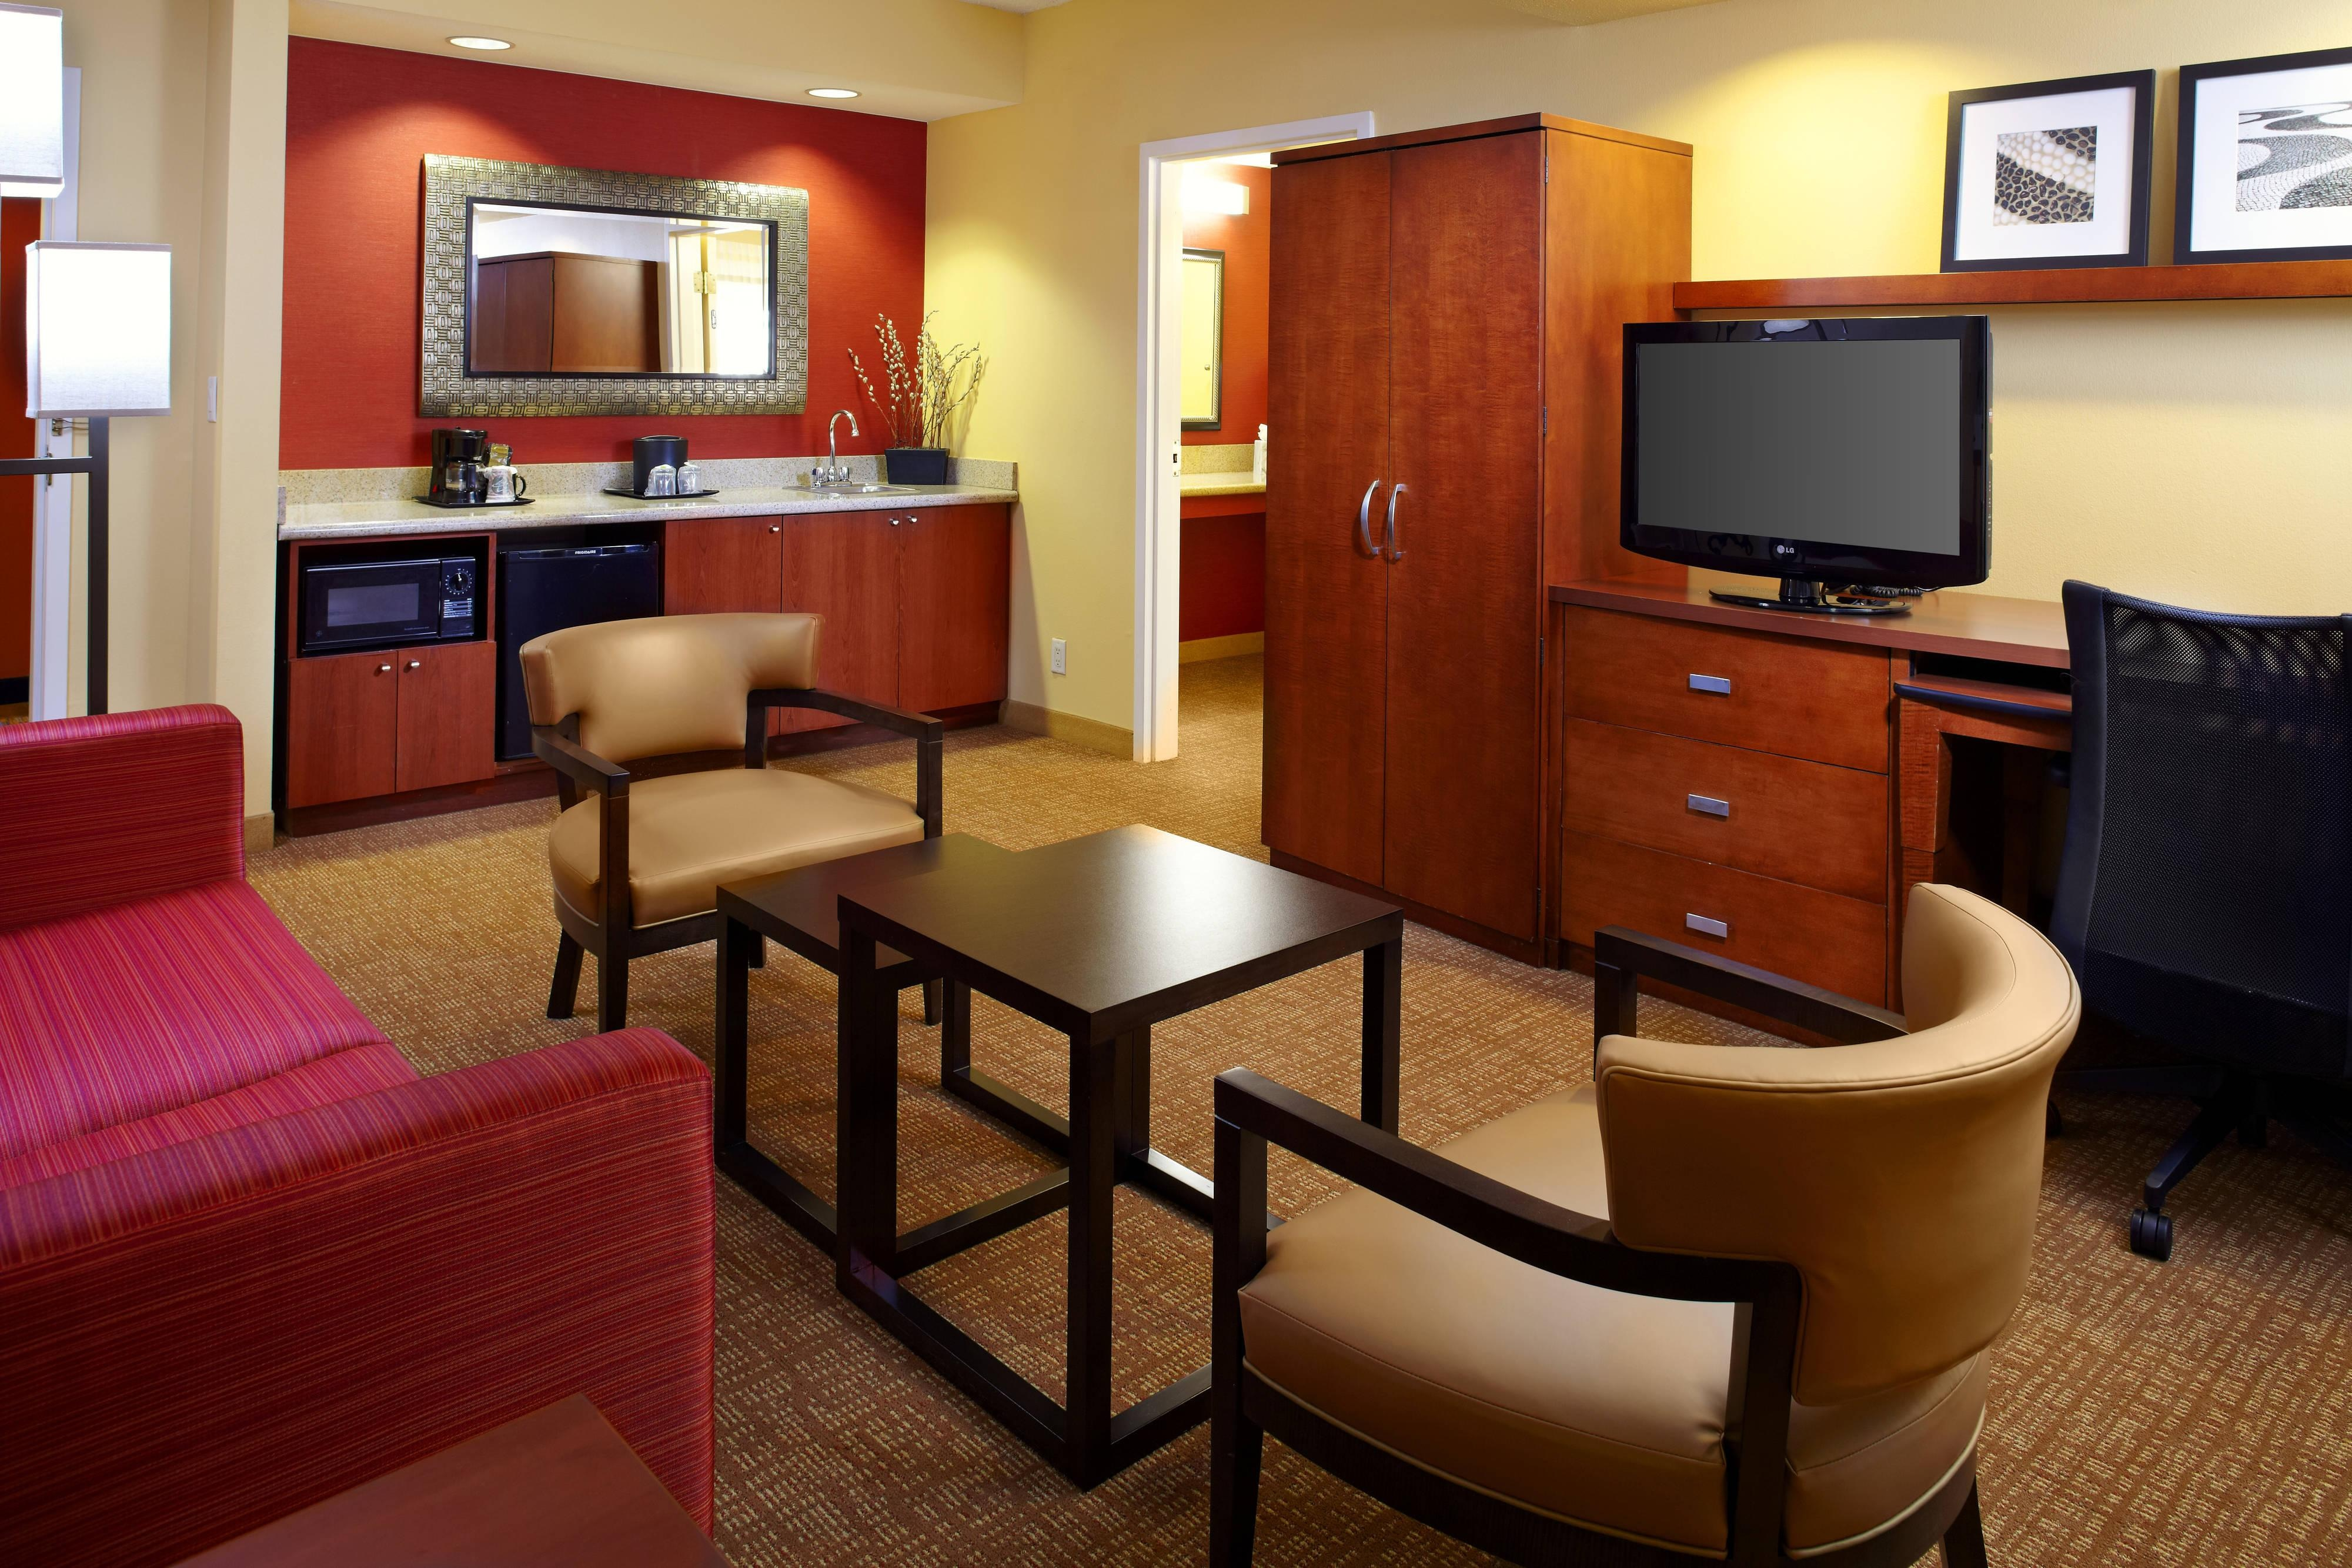 Tampa Oldsmar Hotels | Courtyard by Marriott-Tampa Oldsmar hotel